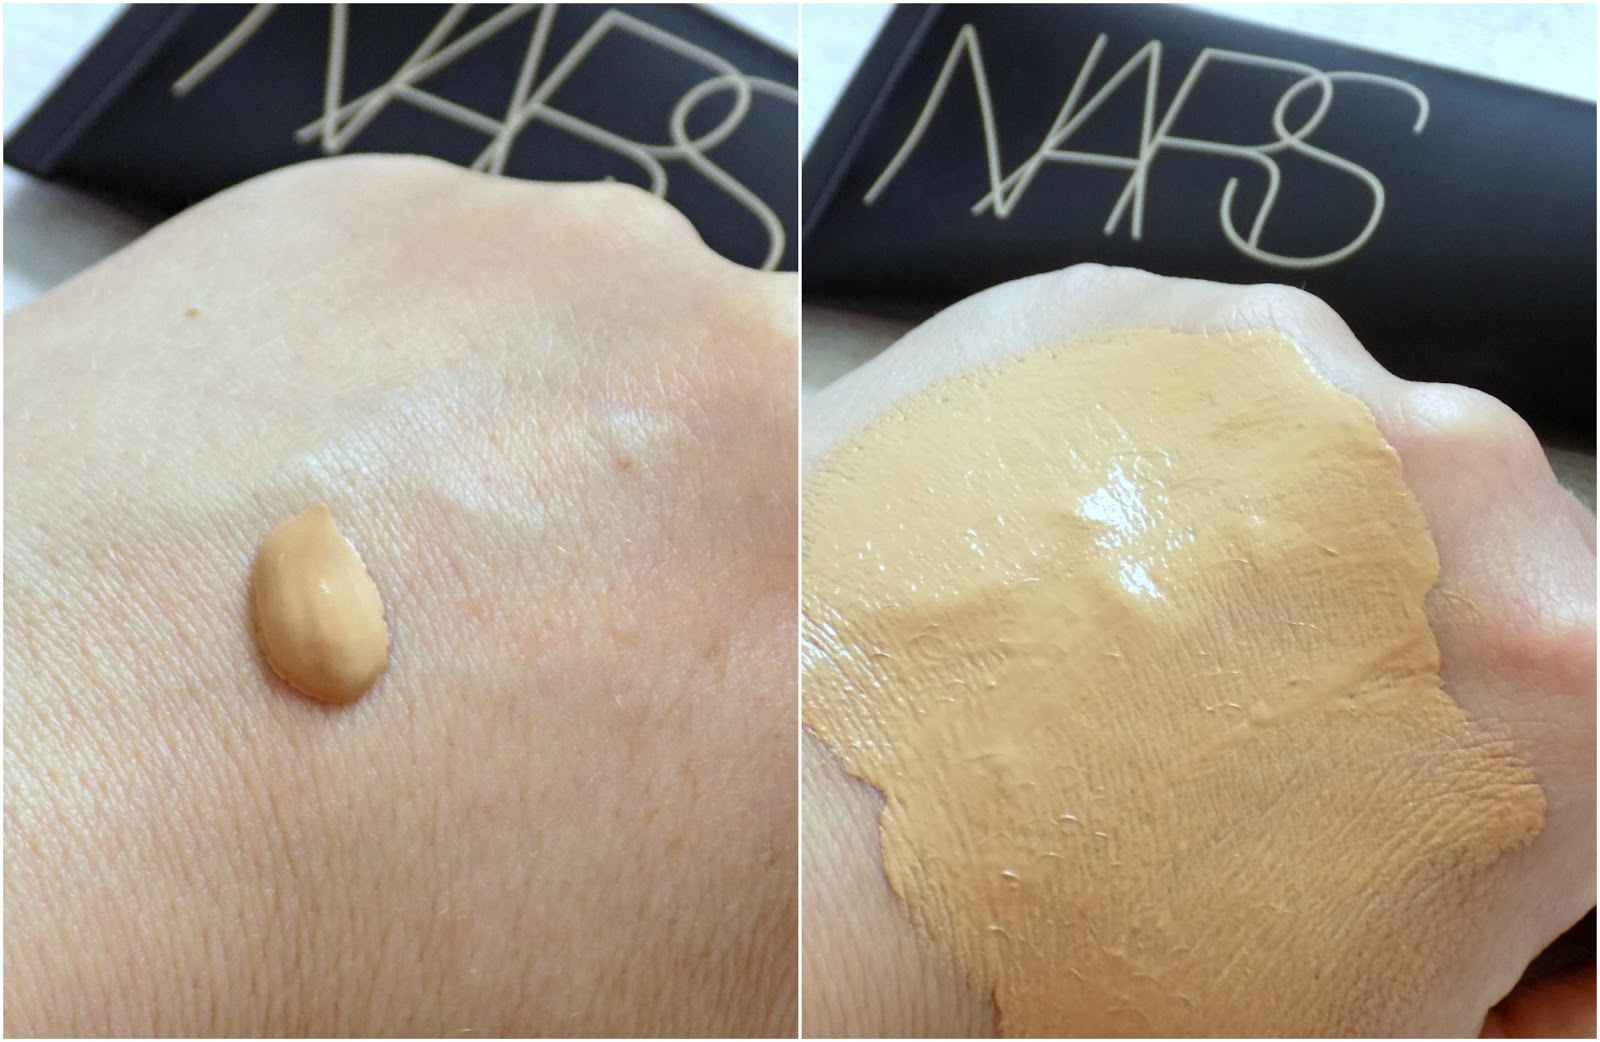 NARS Velvet Matte Skin Tint SPF30 - review, before & after photos ...